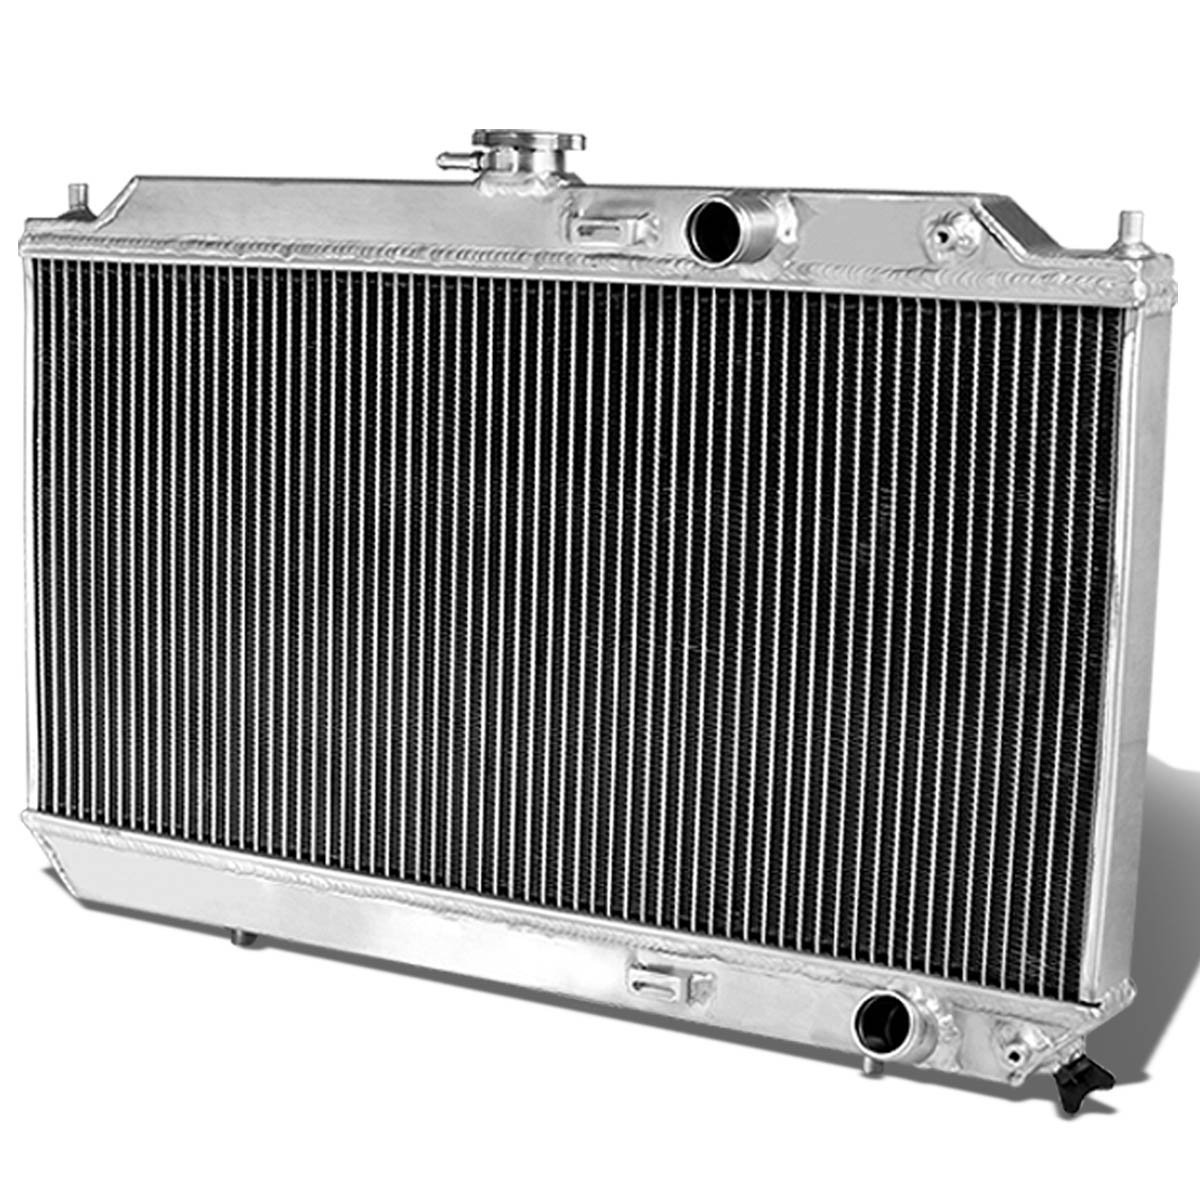 Acura Integra (1990-1993) 2 Row Aluminum Performance Radiator